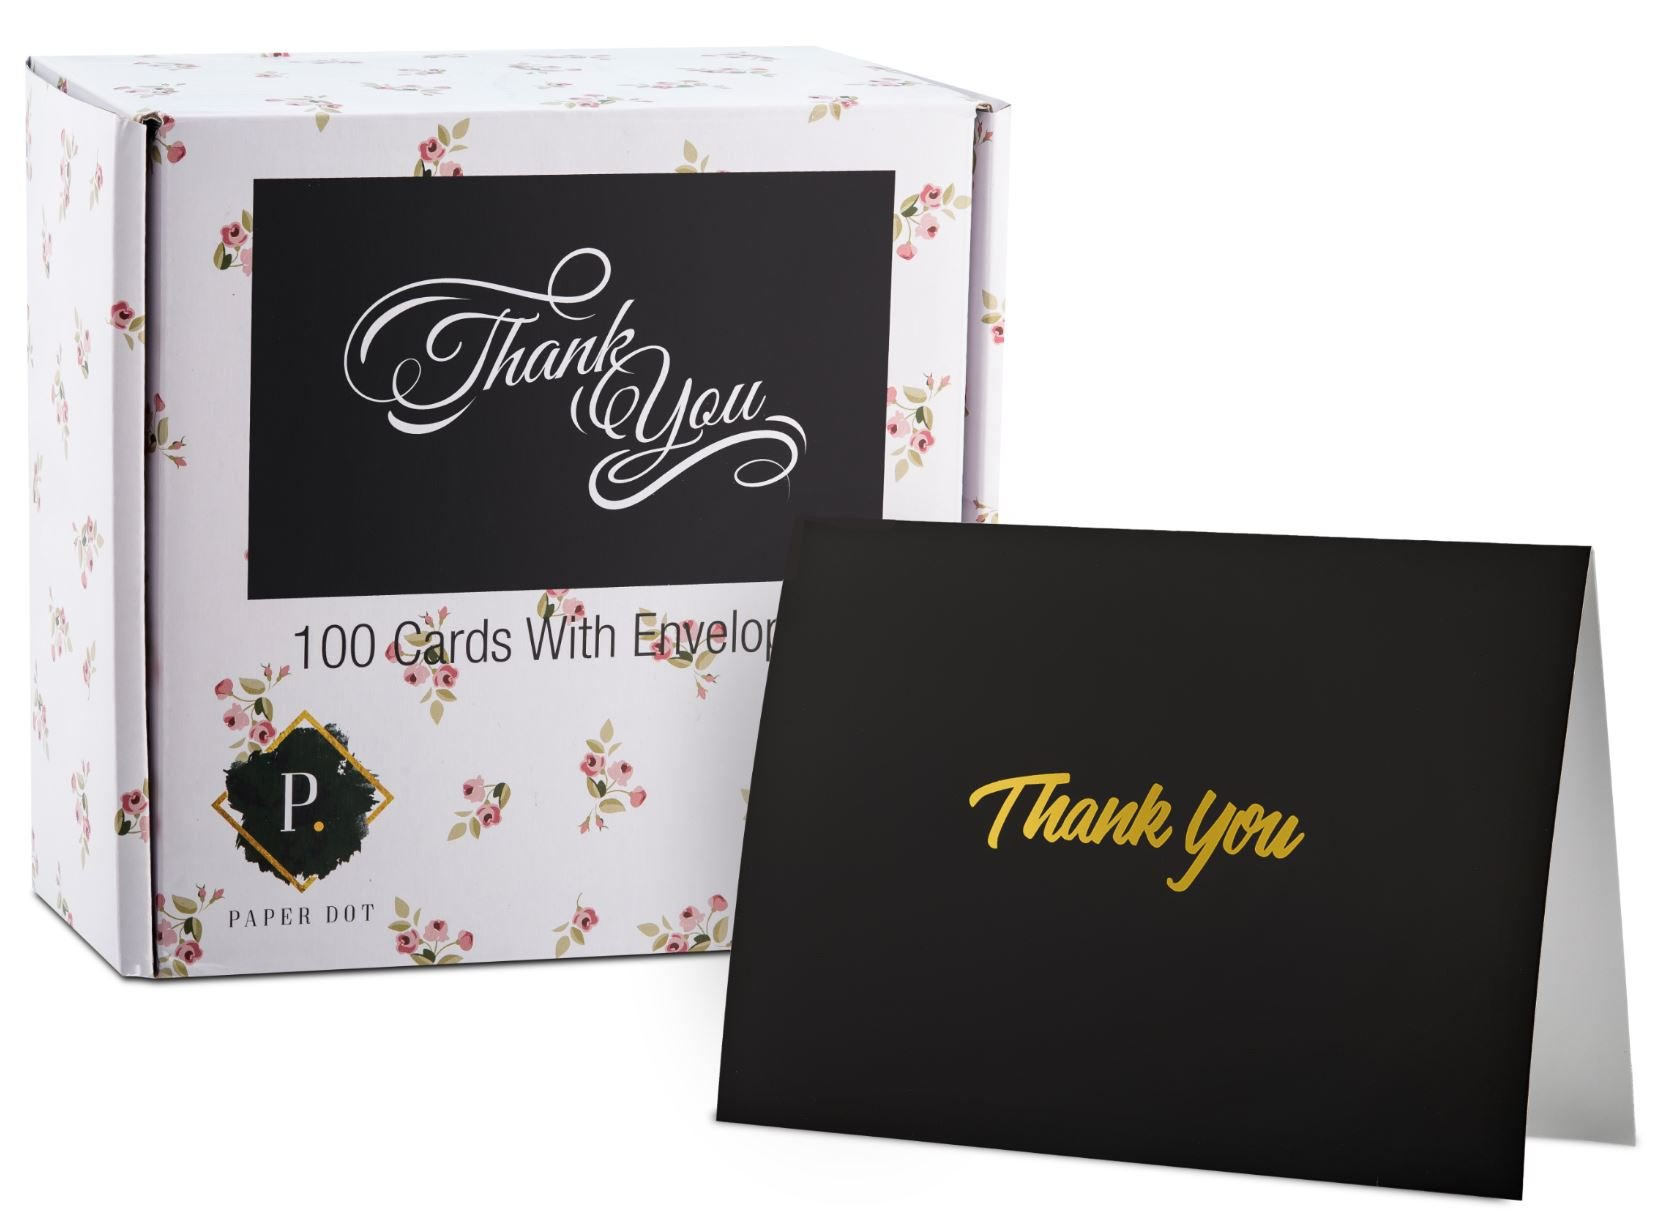 100 Thank You Cards with Envelopes - Thank You Notes, Black & Gold Foil - Blank Cards with Envelopes - For Business, Wedding, Graduation, Baby/Bridal Shower, Funeral, Professional Thank You Cards Bulk by FORTIVO (Image #1)